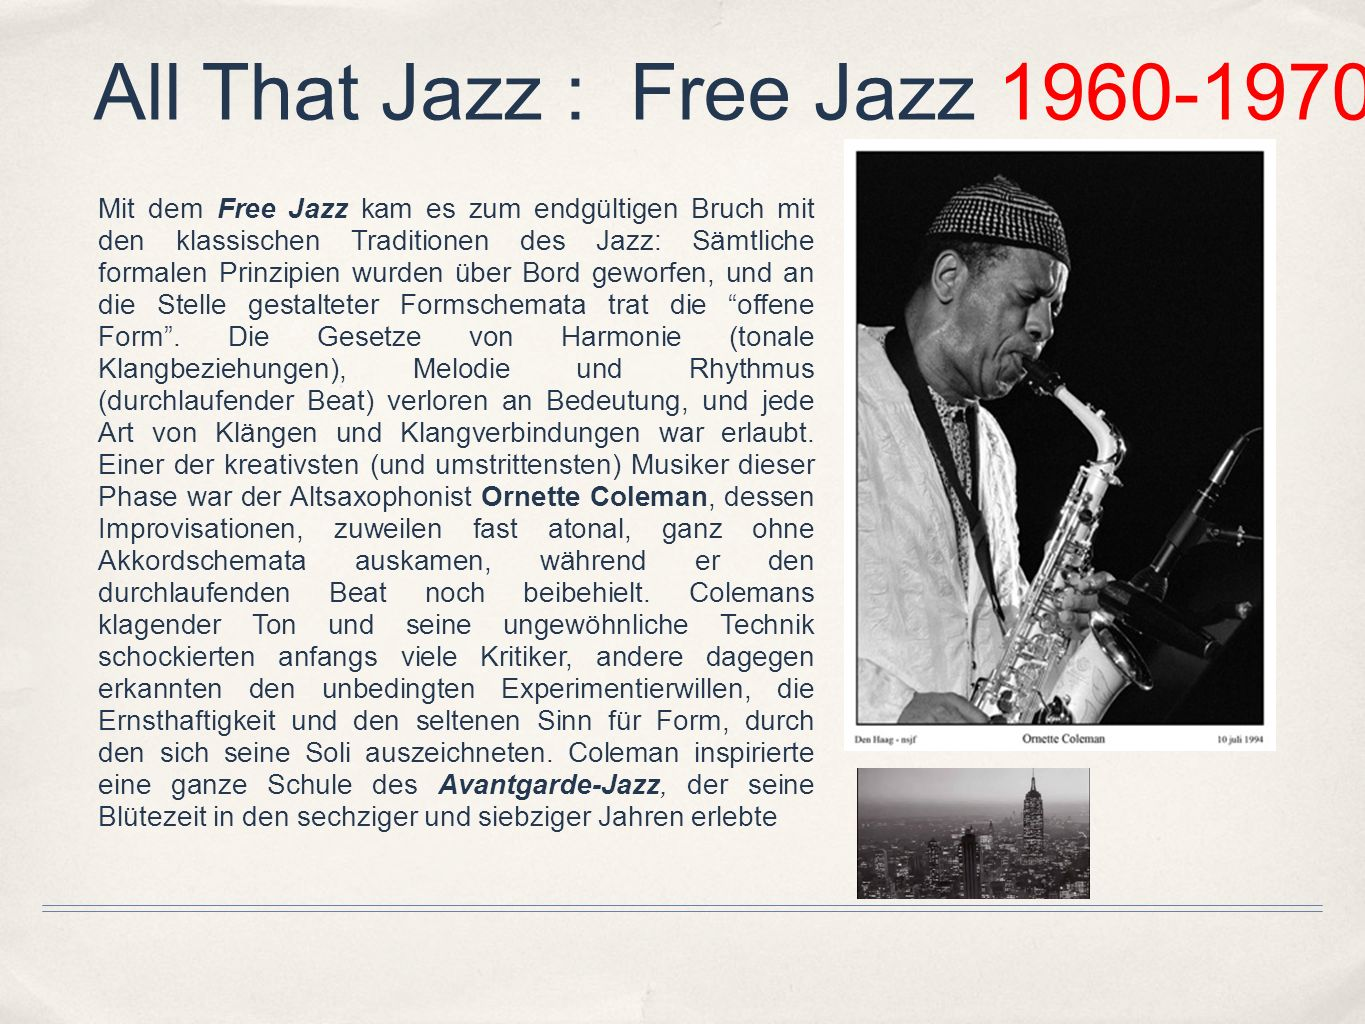 All That Jazz : Free Jazz 1960-1970